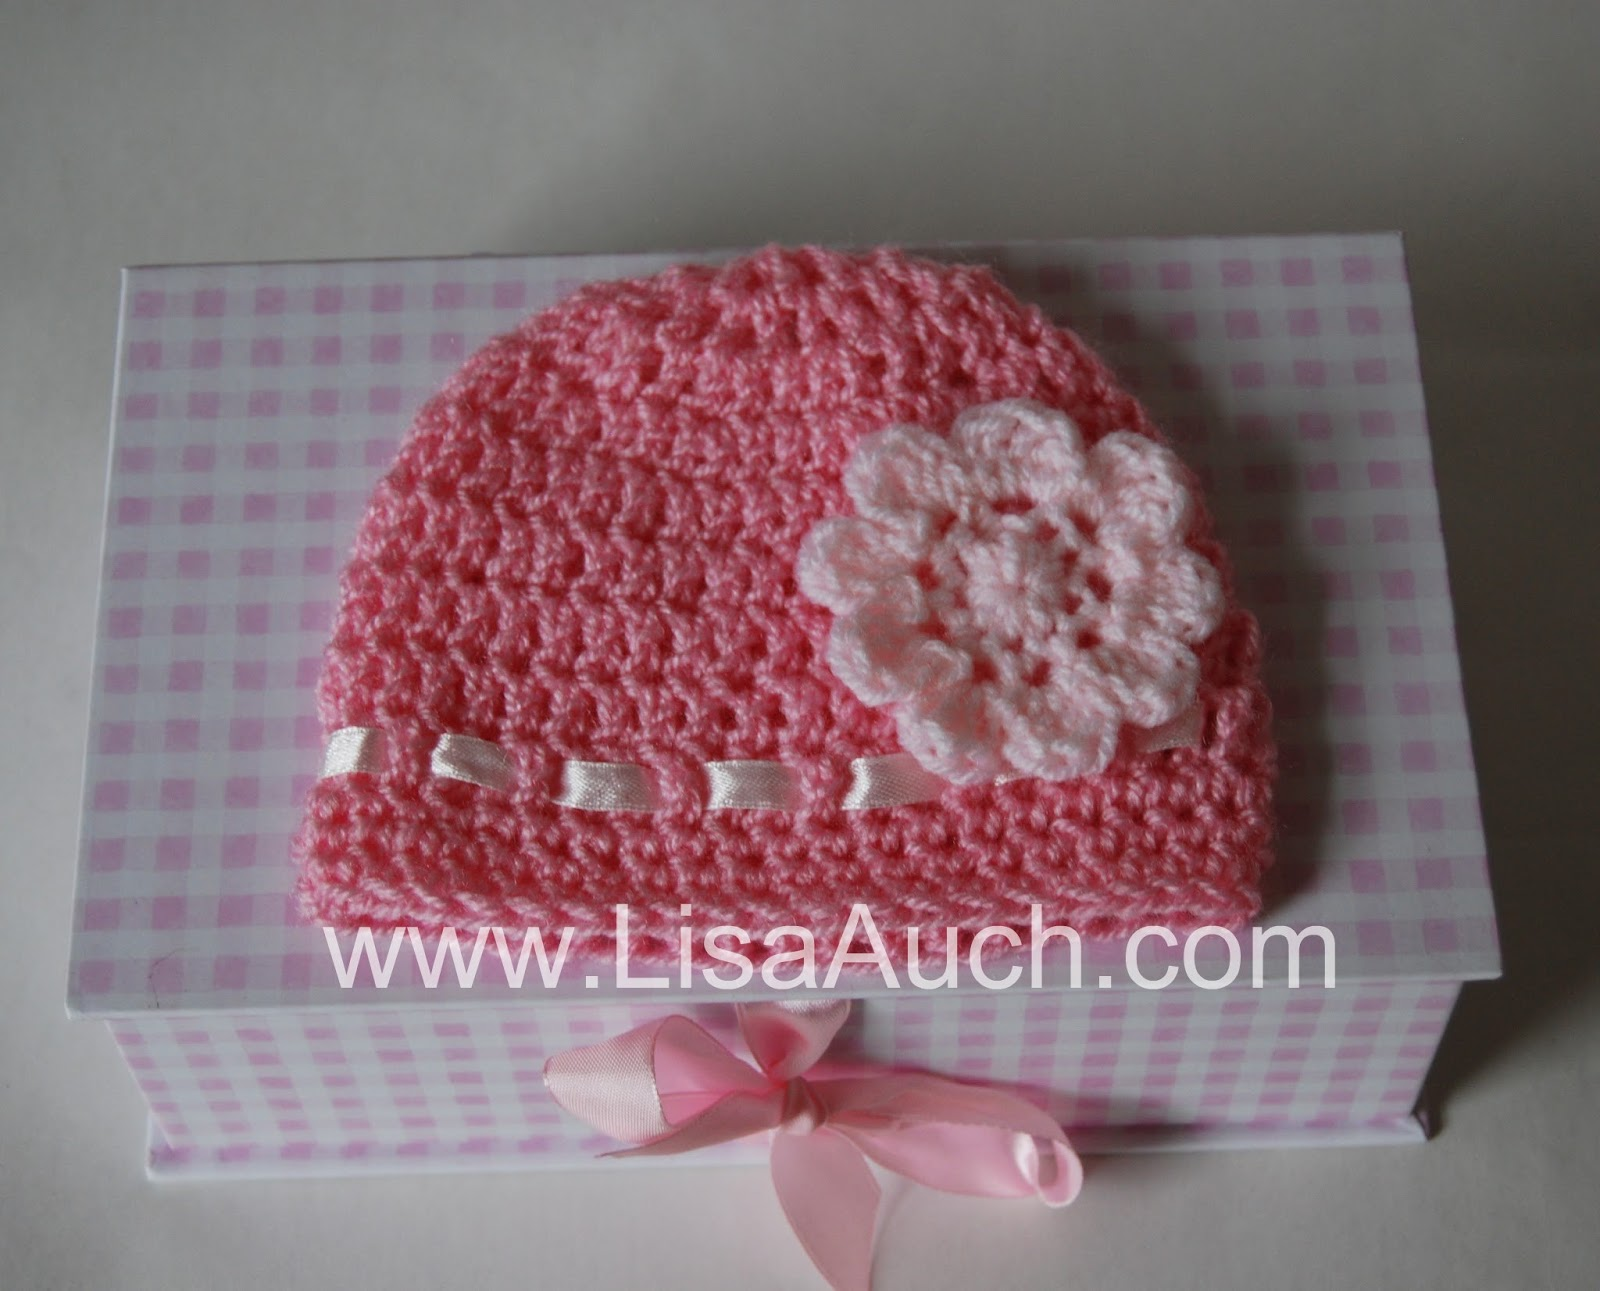 free crochet patterns, crochet hat patterns